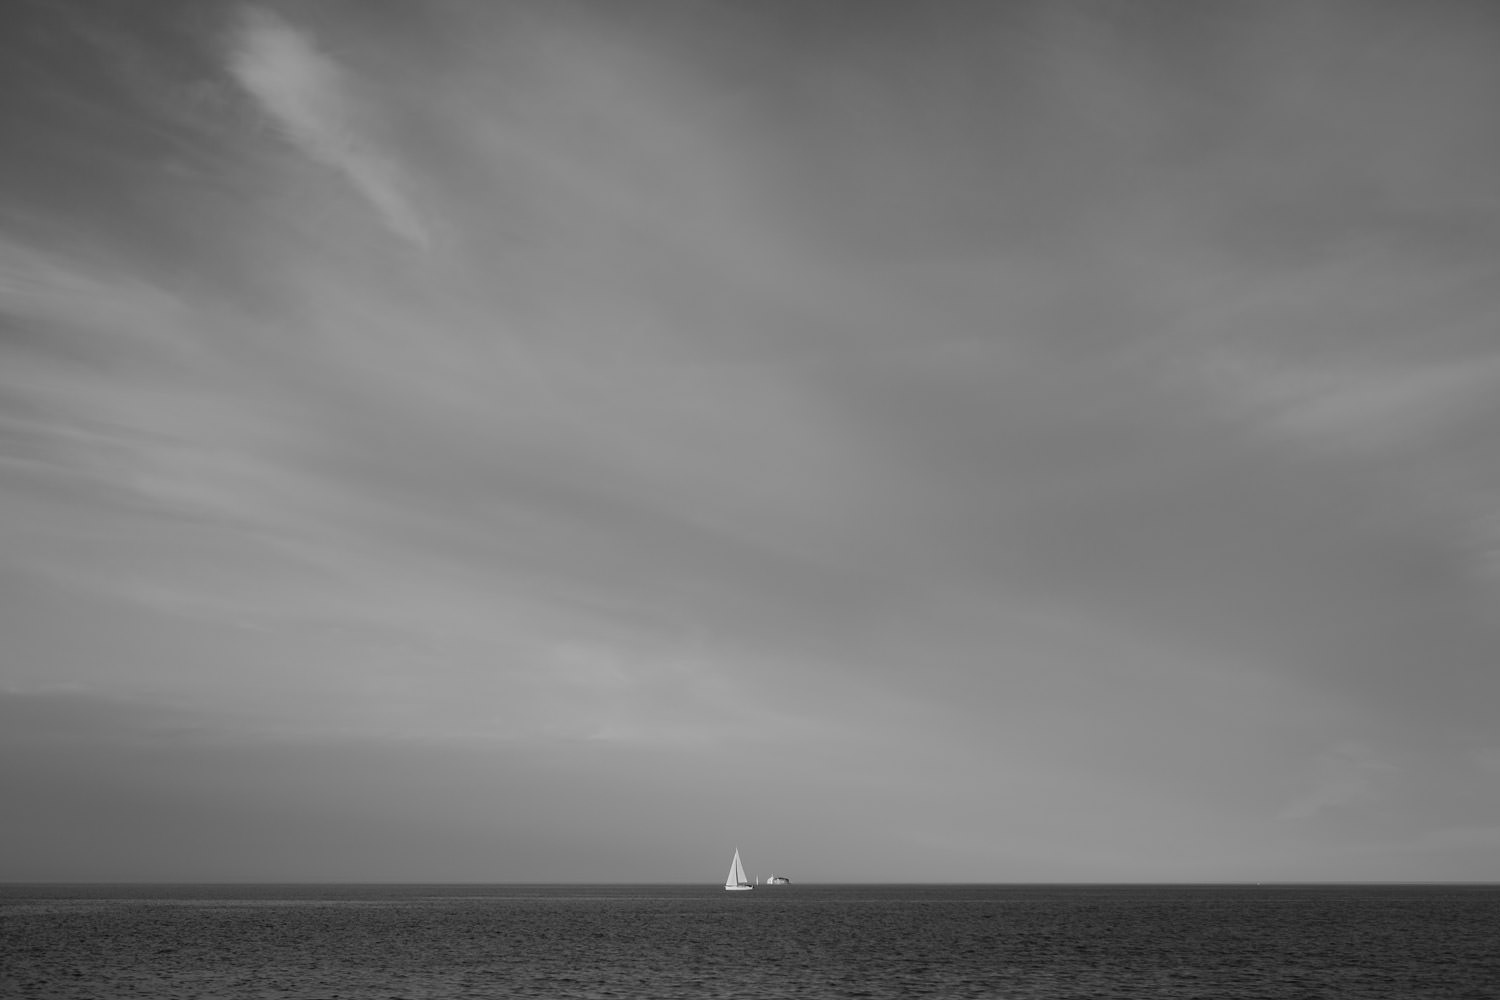 Fine art black and white picture of the Lake Michigan with sailboat in the distance. Photographed at North Ave. beach in Chicago